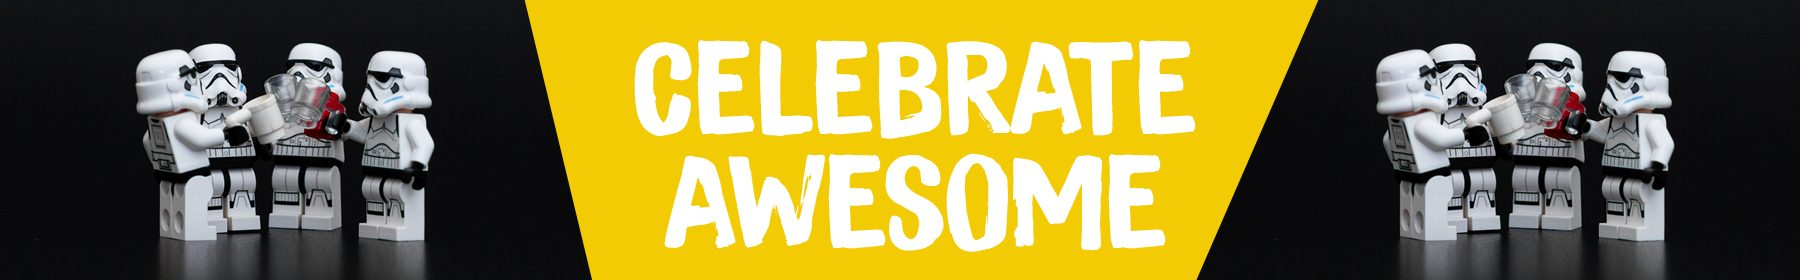 Quanton value celebrate awesome